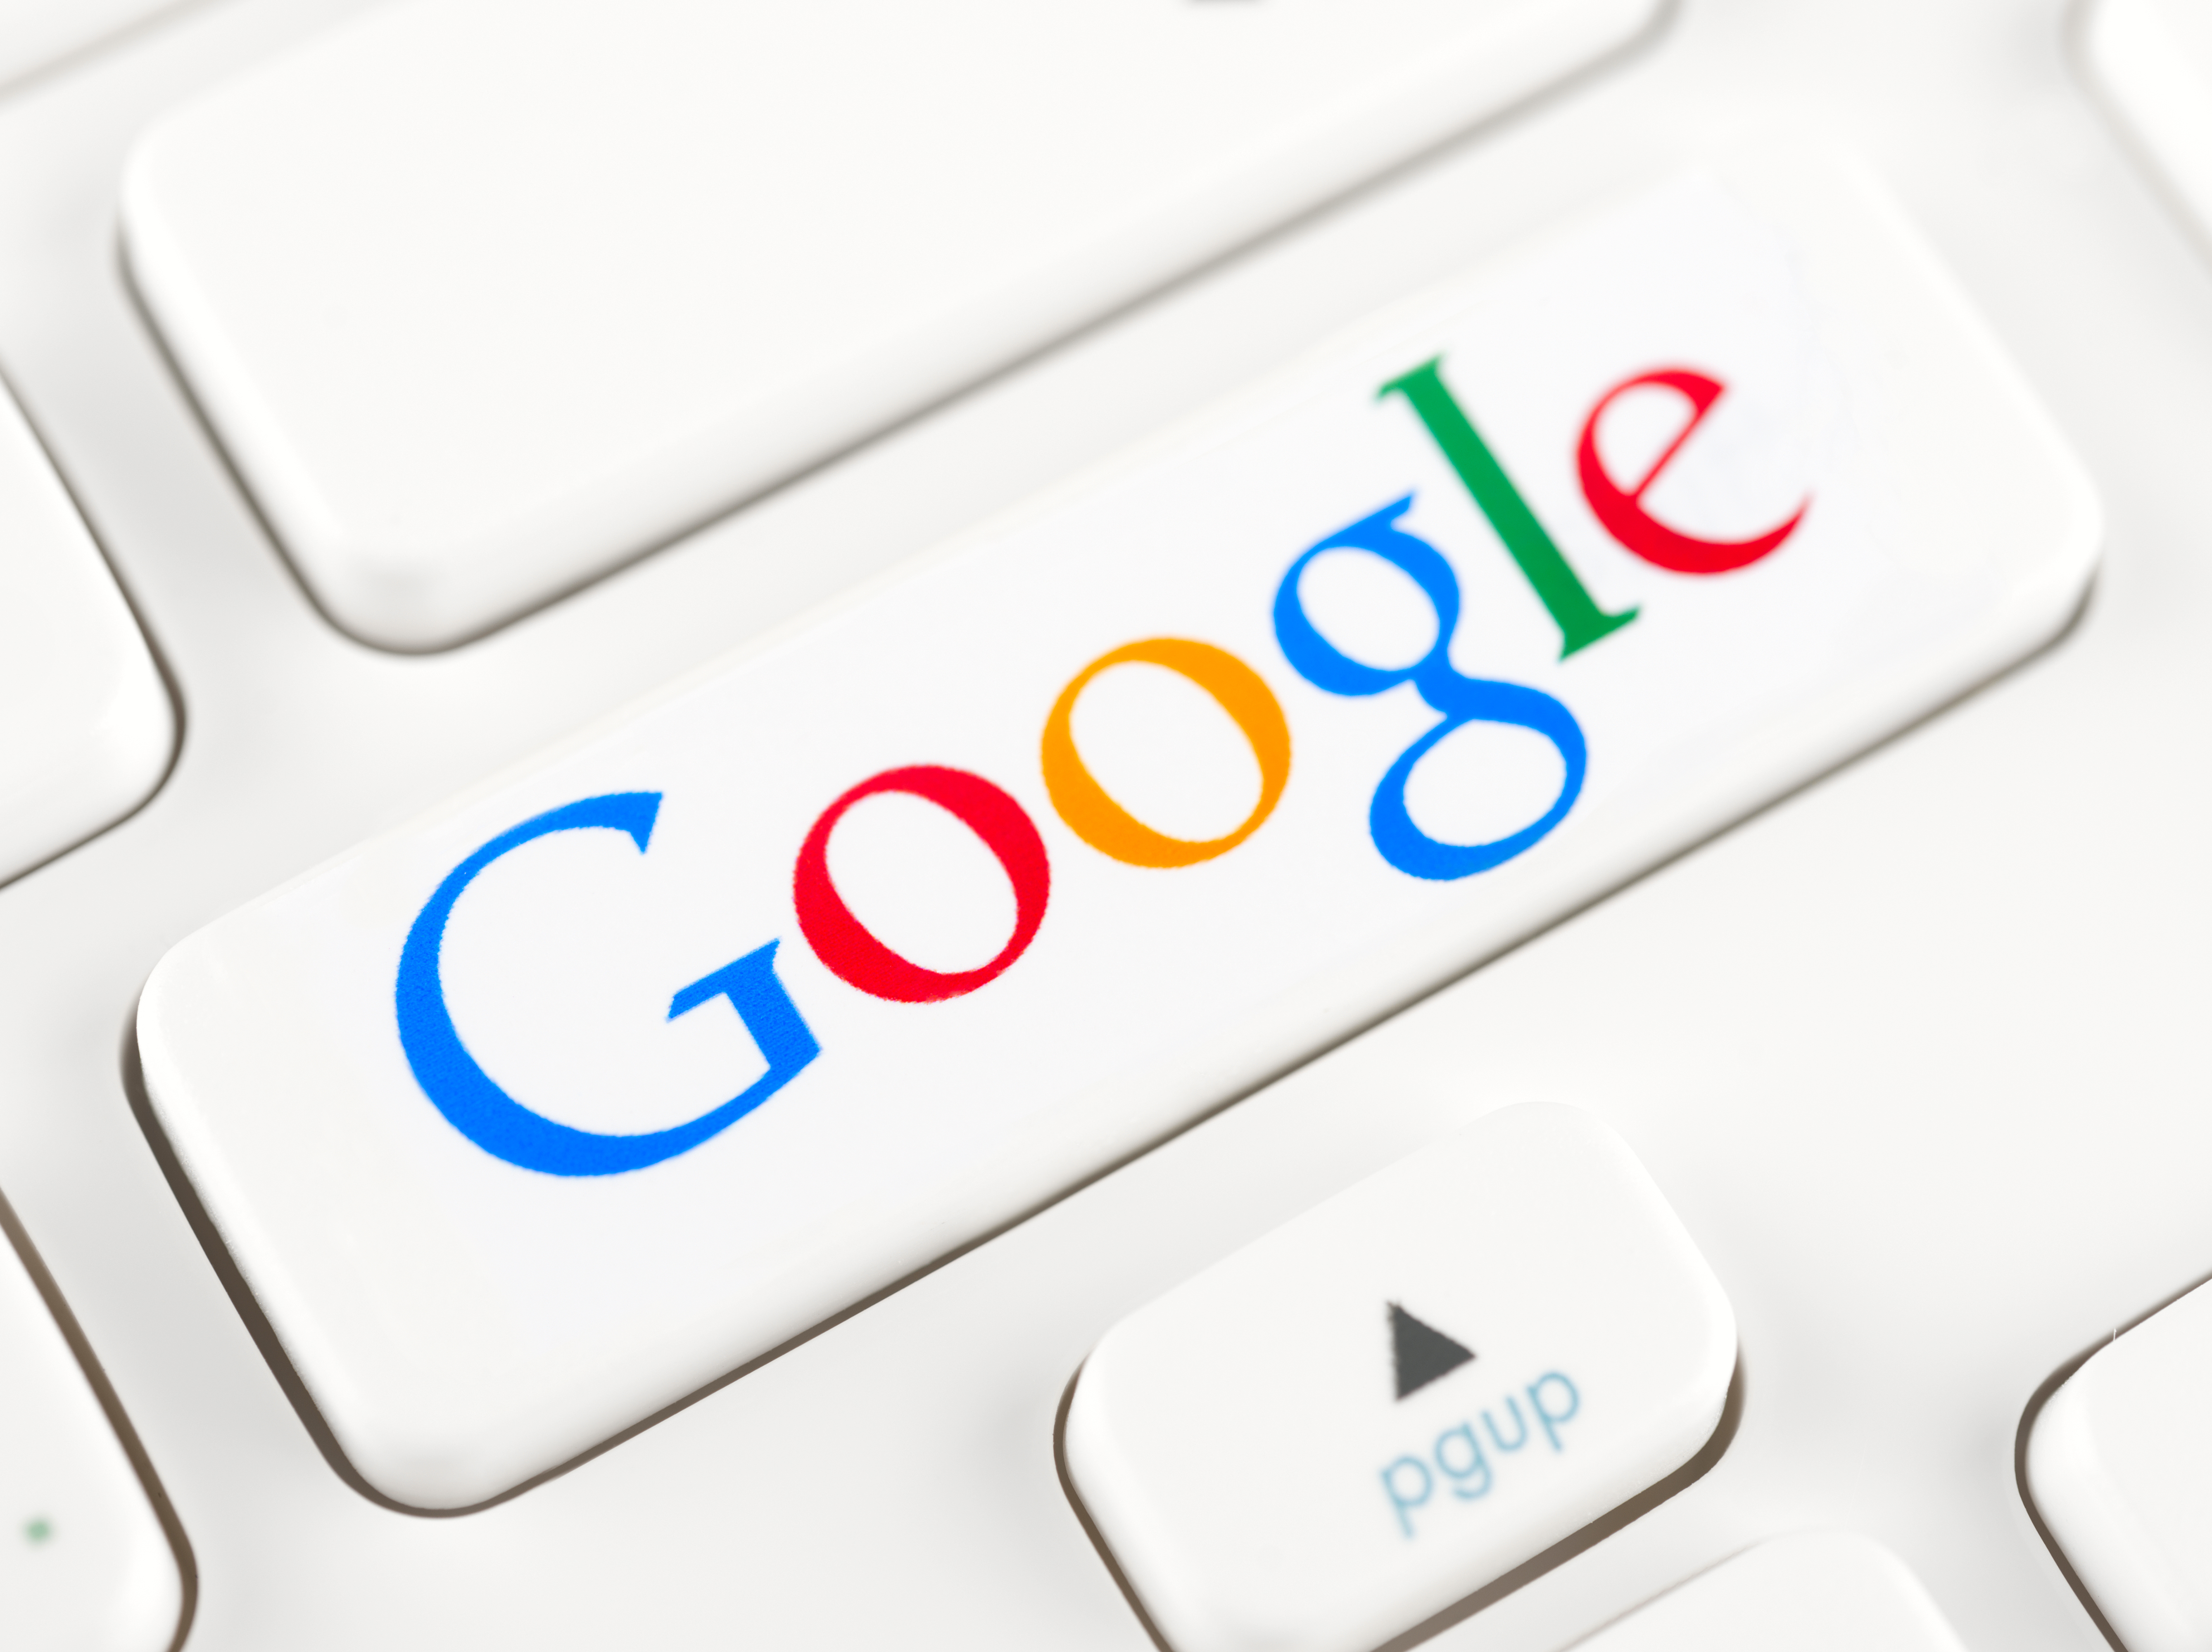 Google High Definition Wallpapers